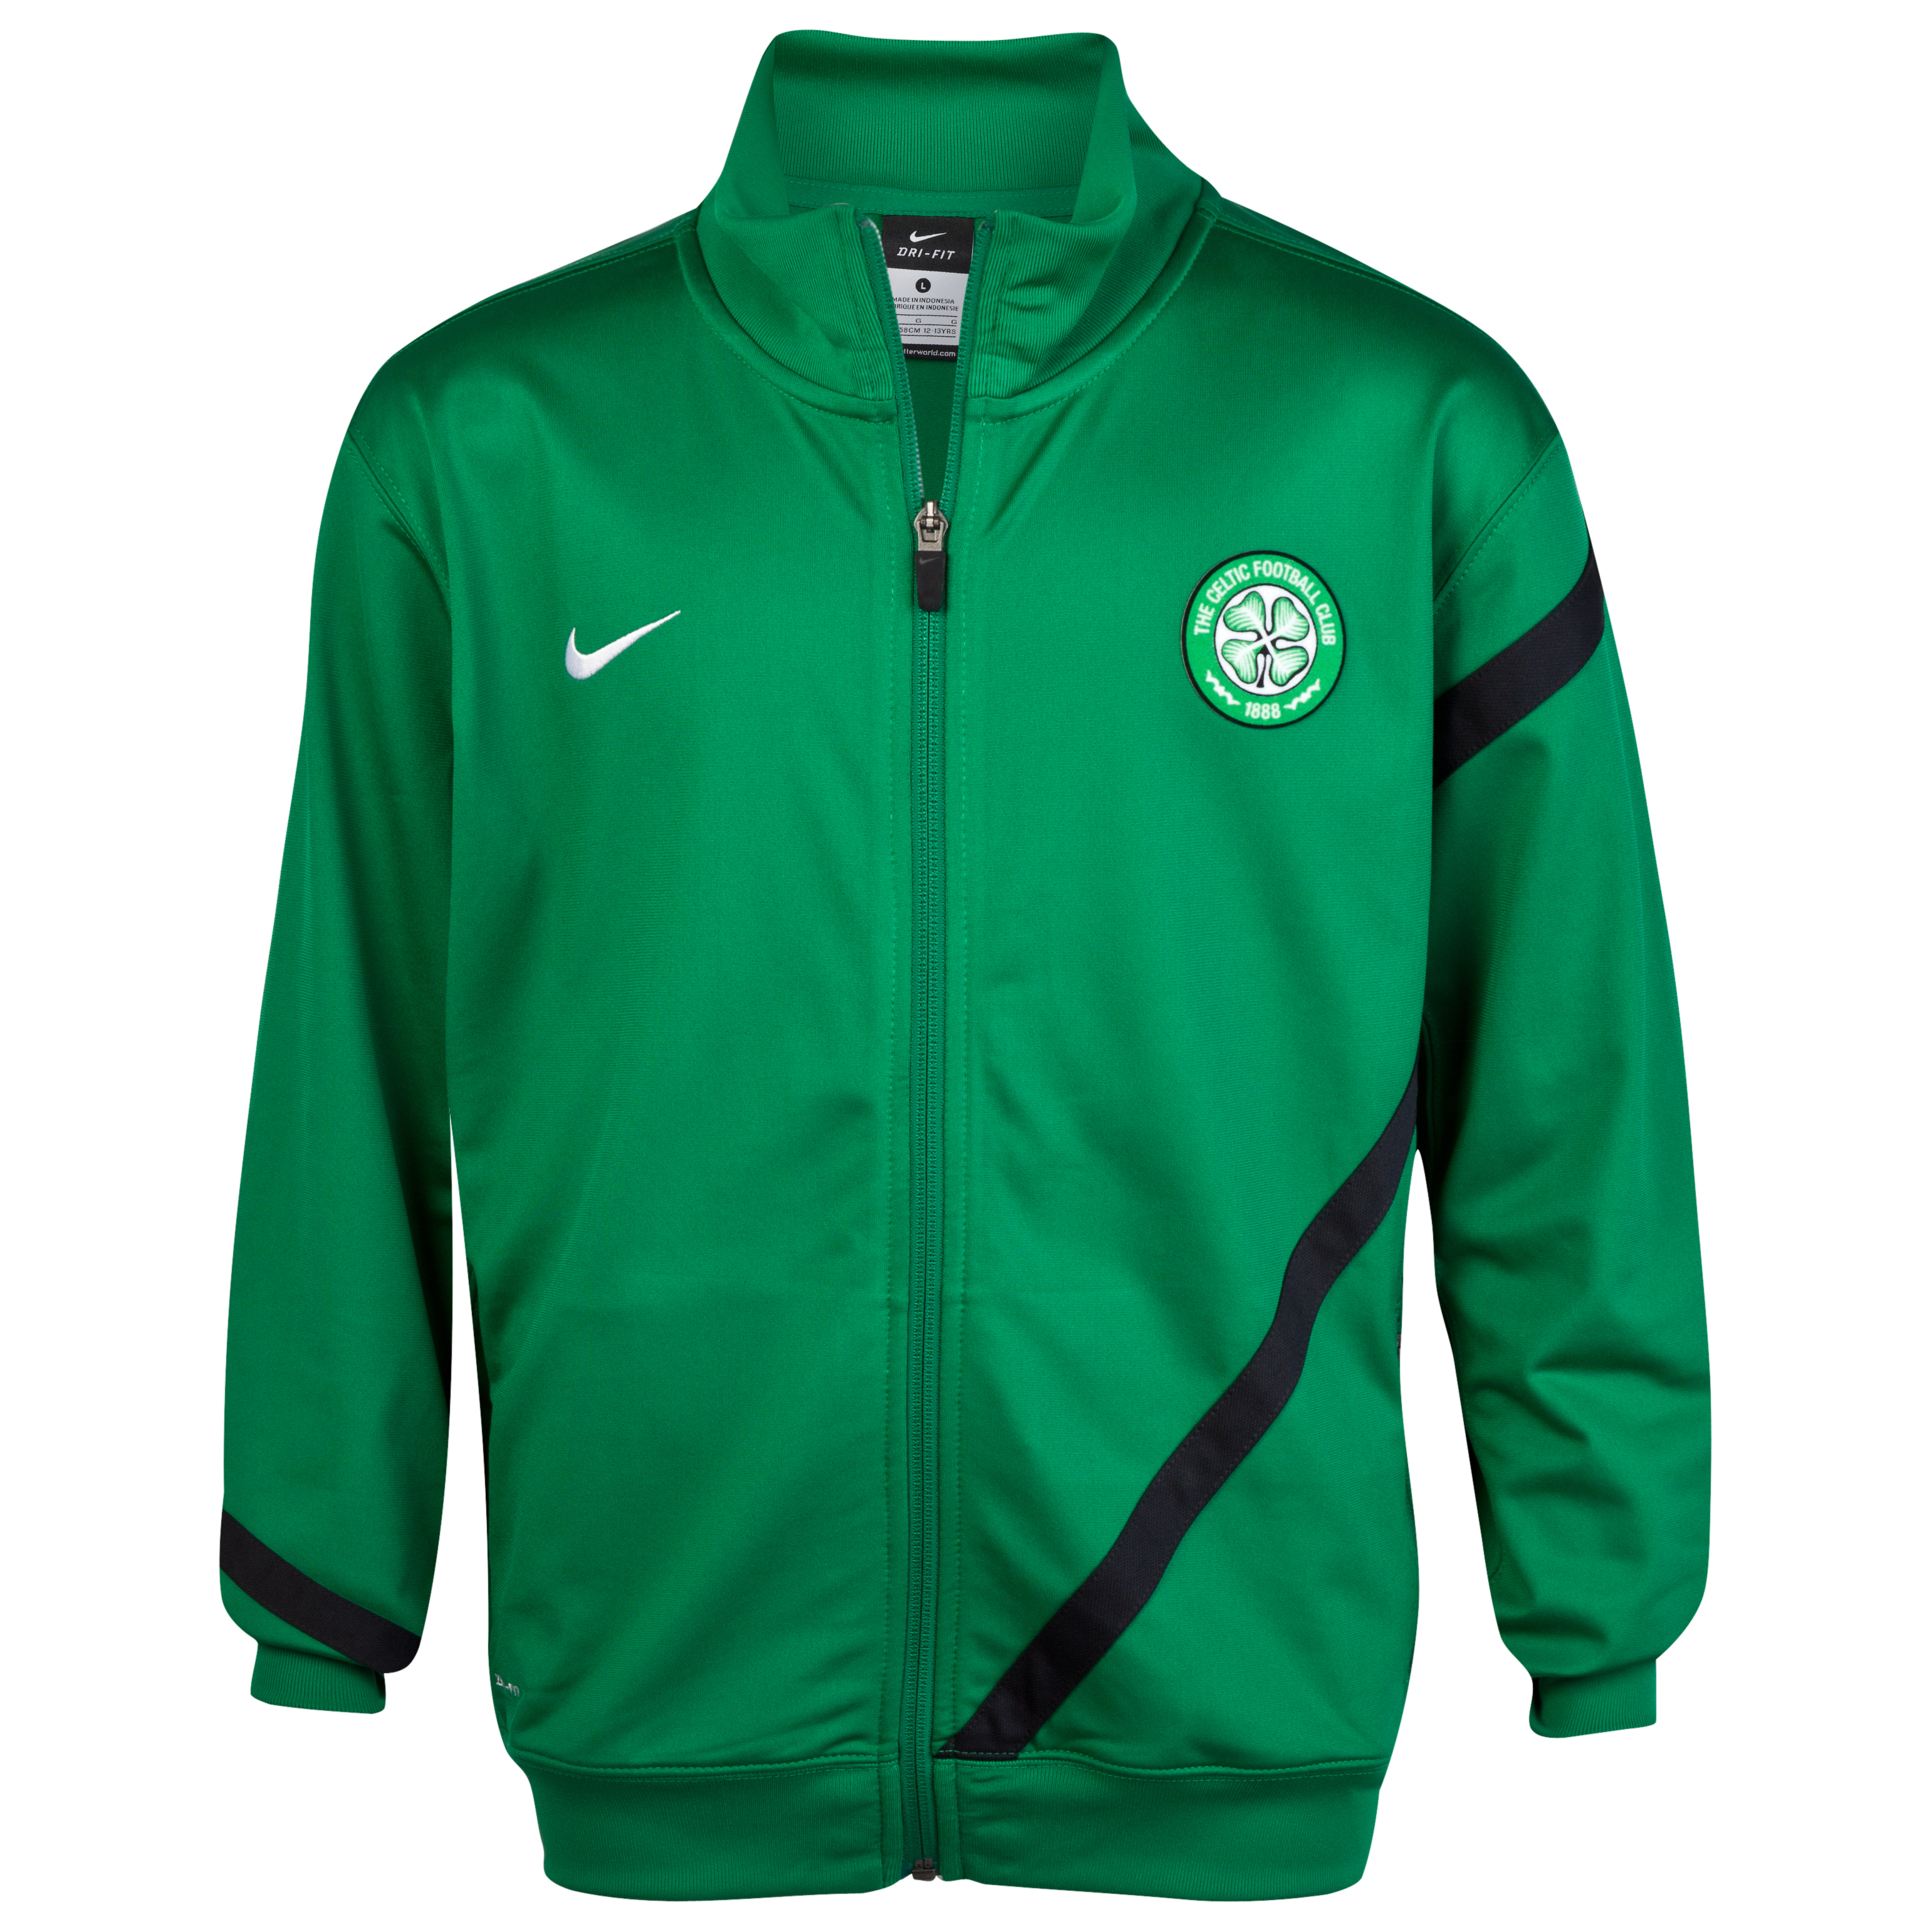 Celtic Poly Track Jacket - Pine Green/Black/White - Youths